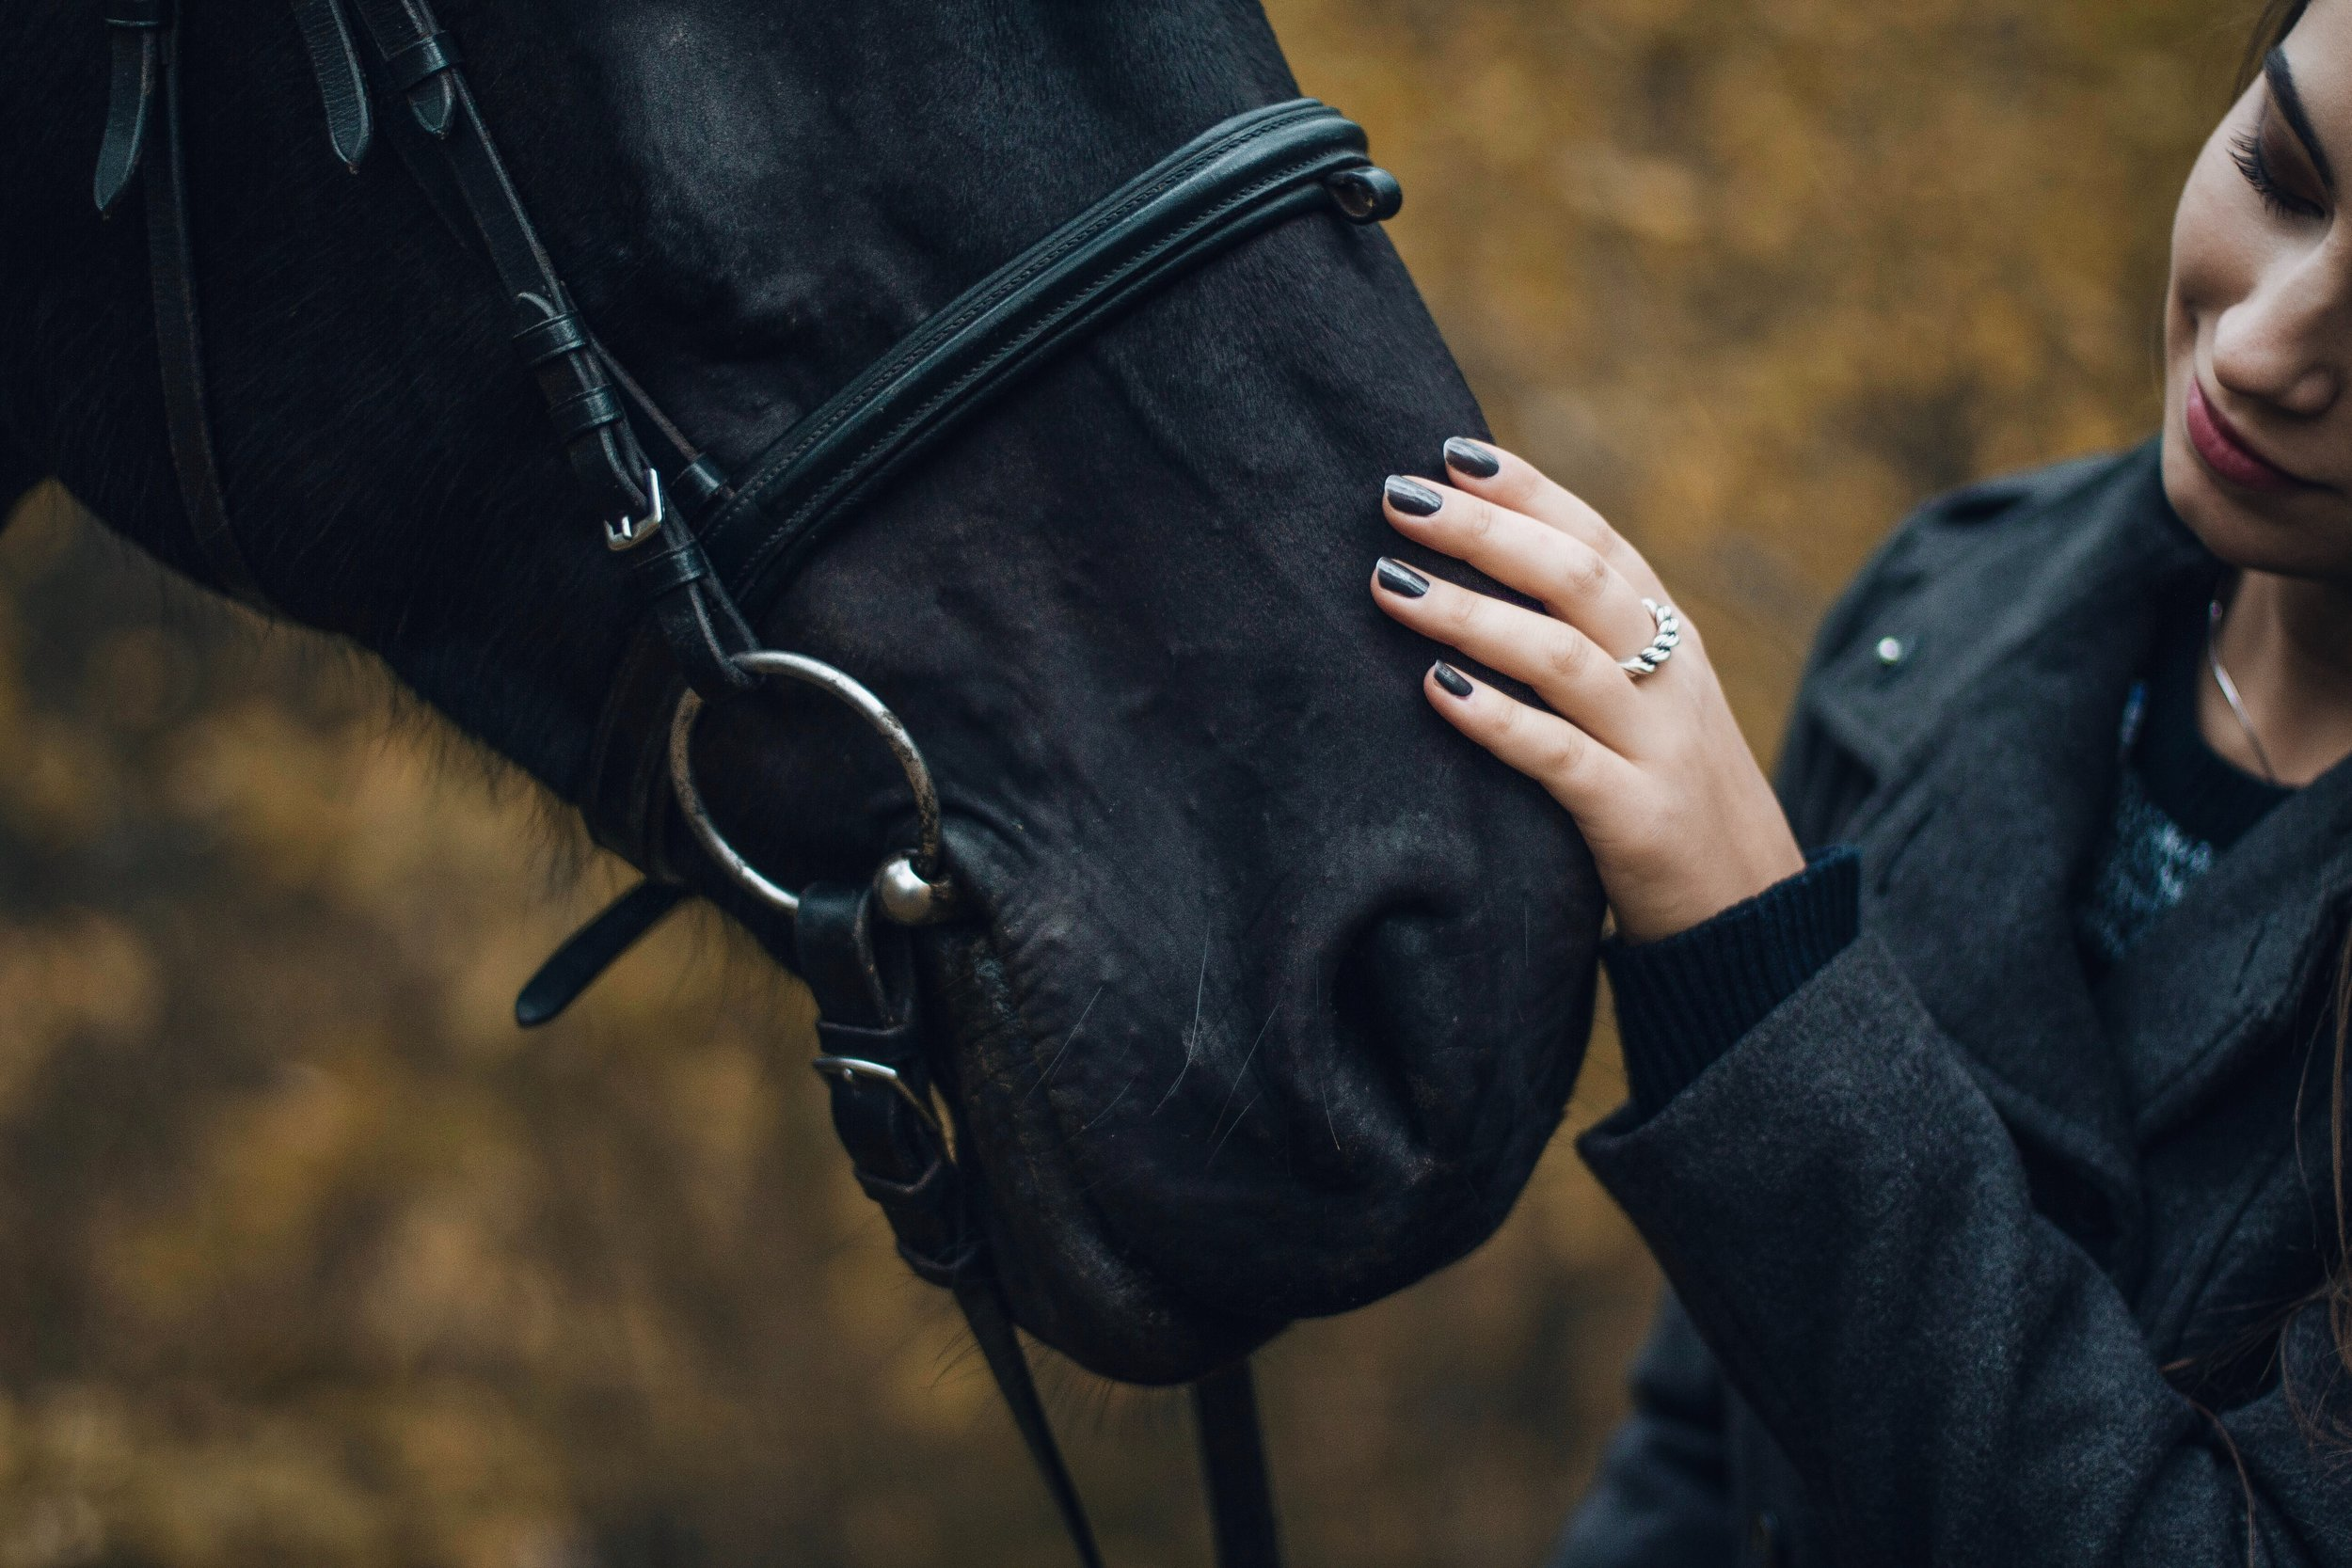 Stress-free woman rubs horse as part of therapy.